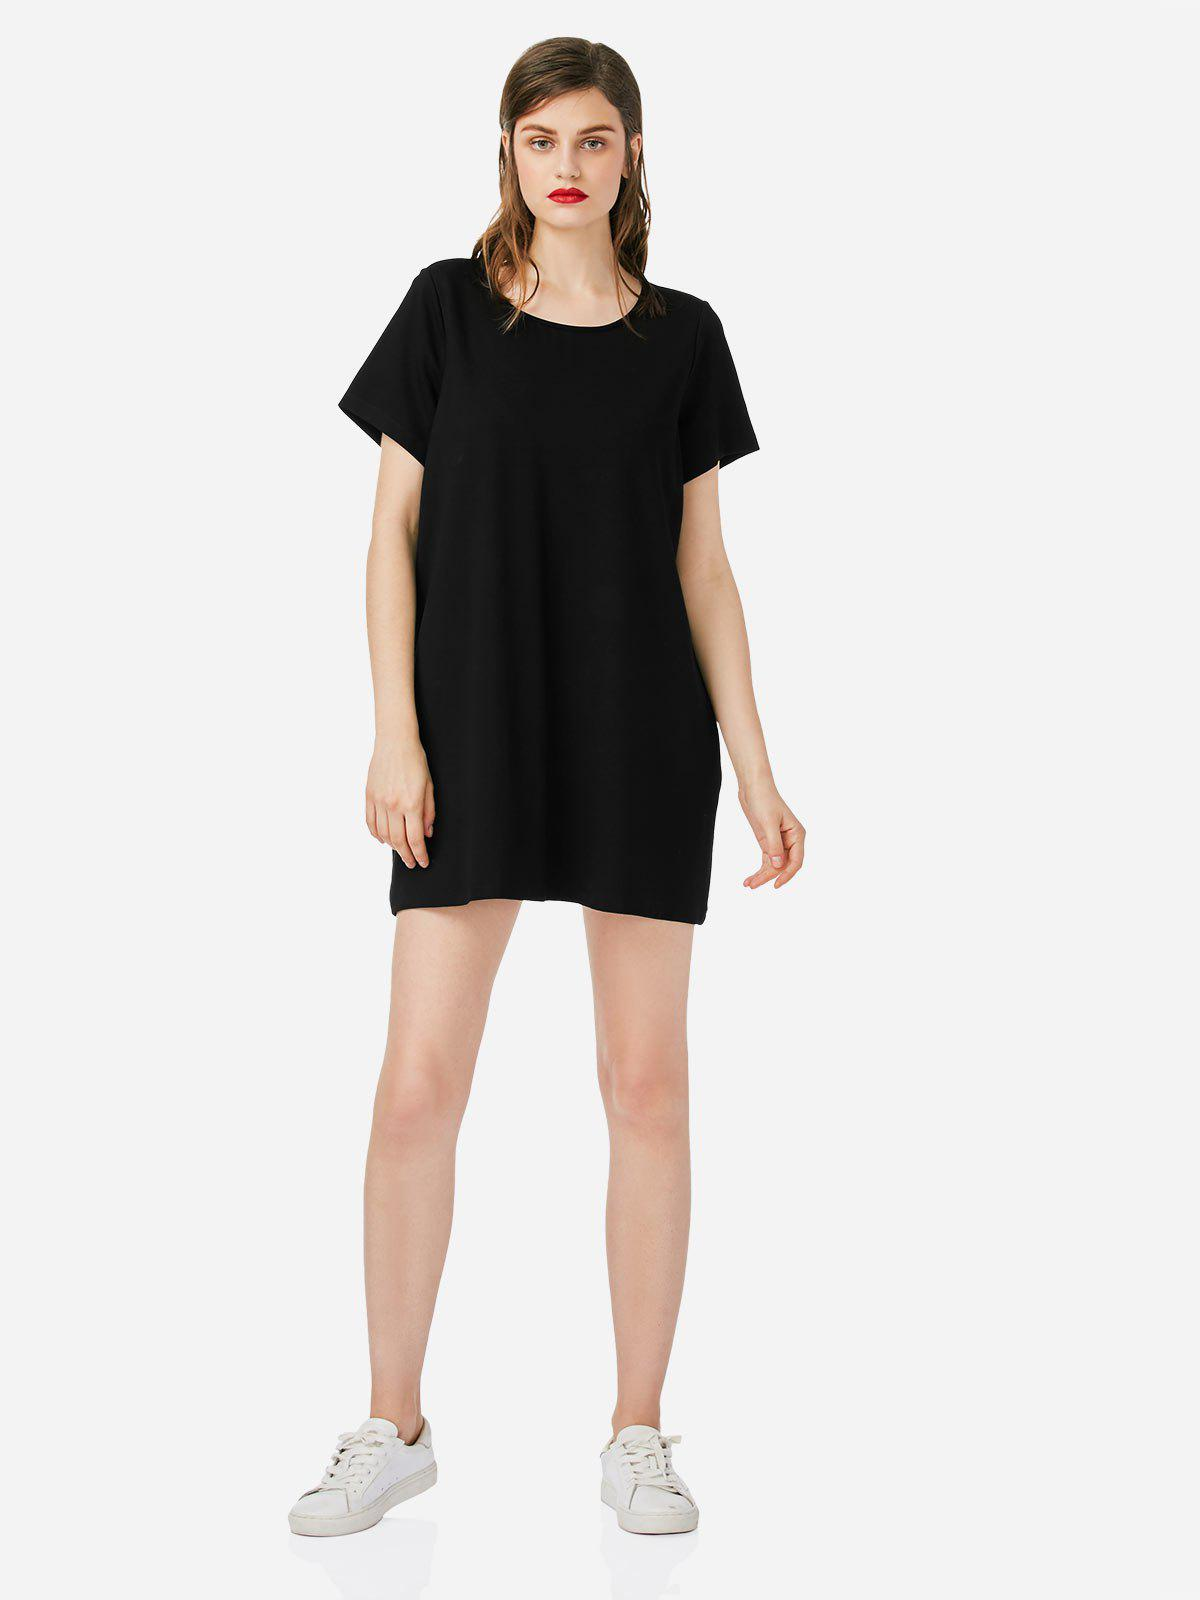 ZAN.STYLE Crew Neck T-shirt Dress